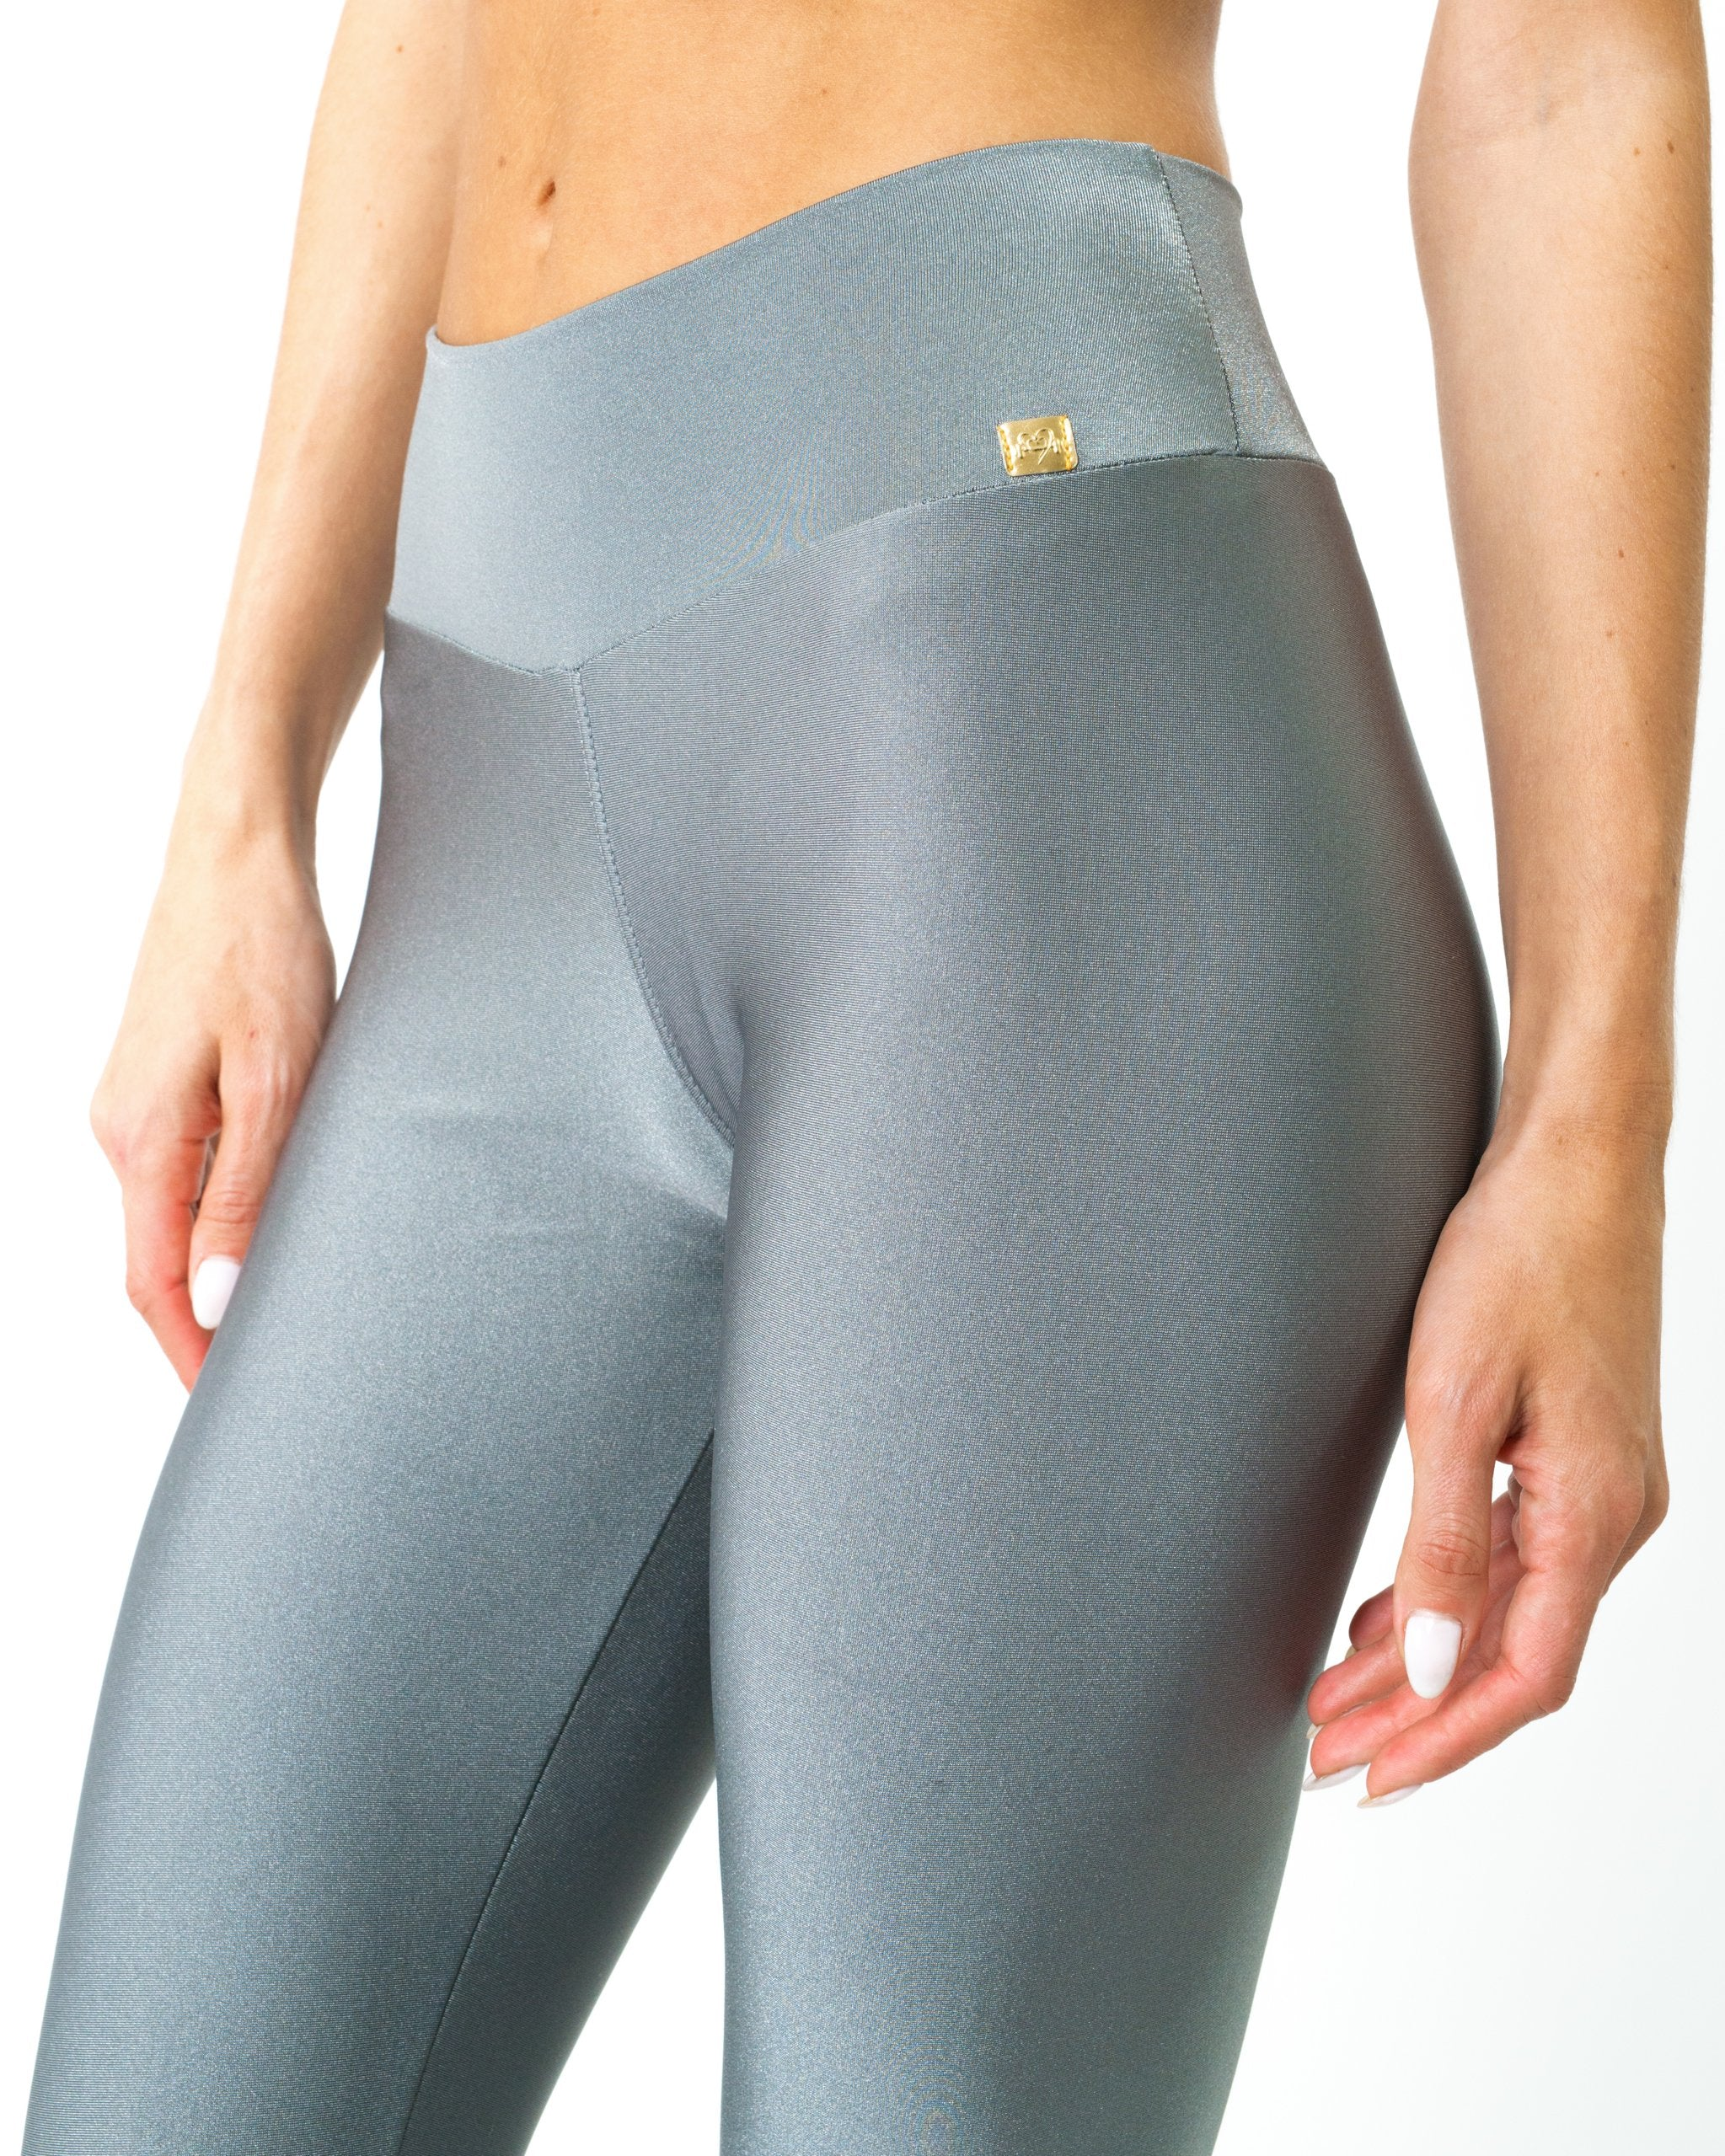 Samba Ultra-Stretch UV Protected Compression